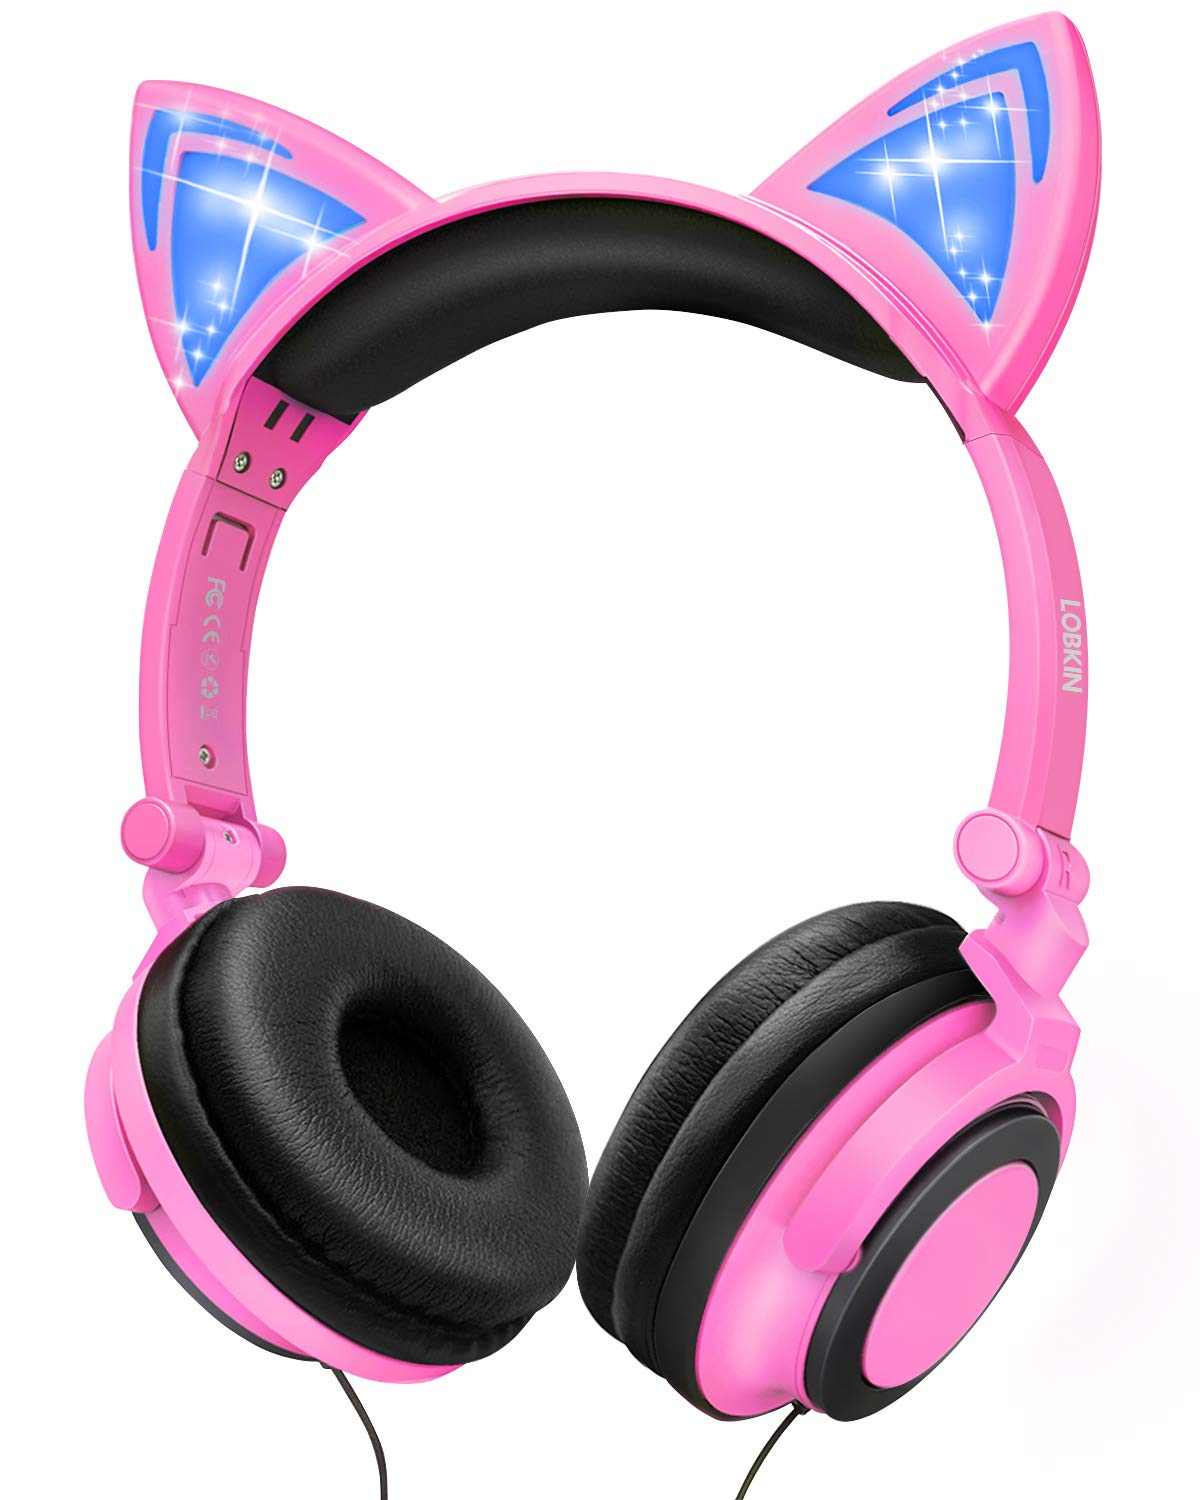 Kids Headphones with Cat Ear,Lobkin Wired Headphones Over Ear for Children,Foldable Headphone with Glowing Light for Kindle Fire, Samsung, iPad Tablets (Pink)